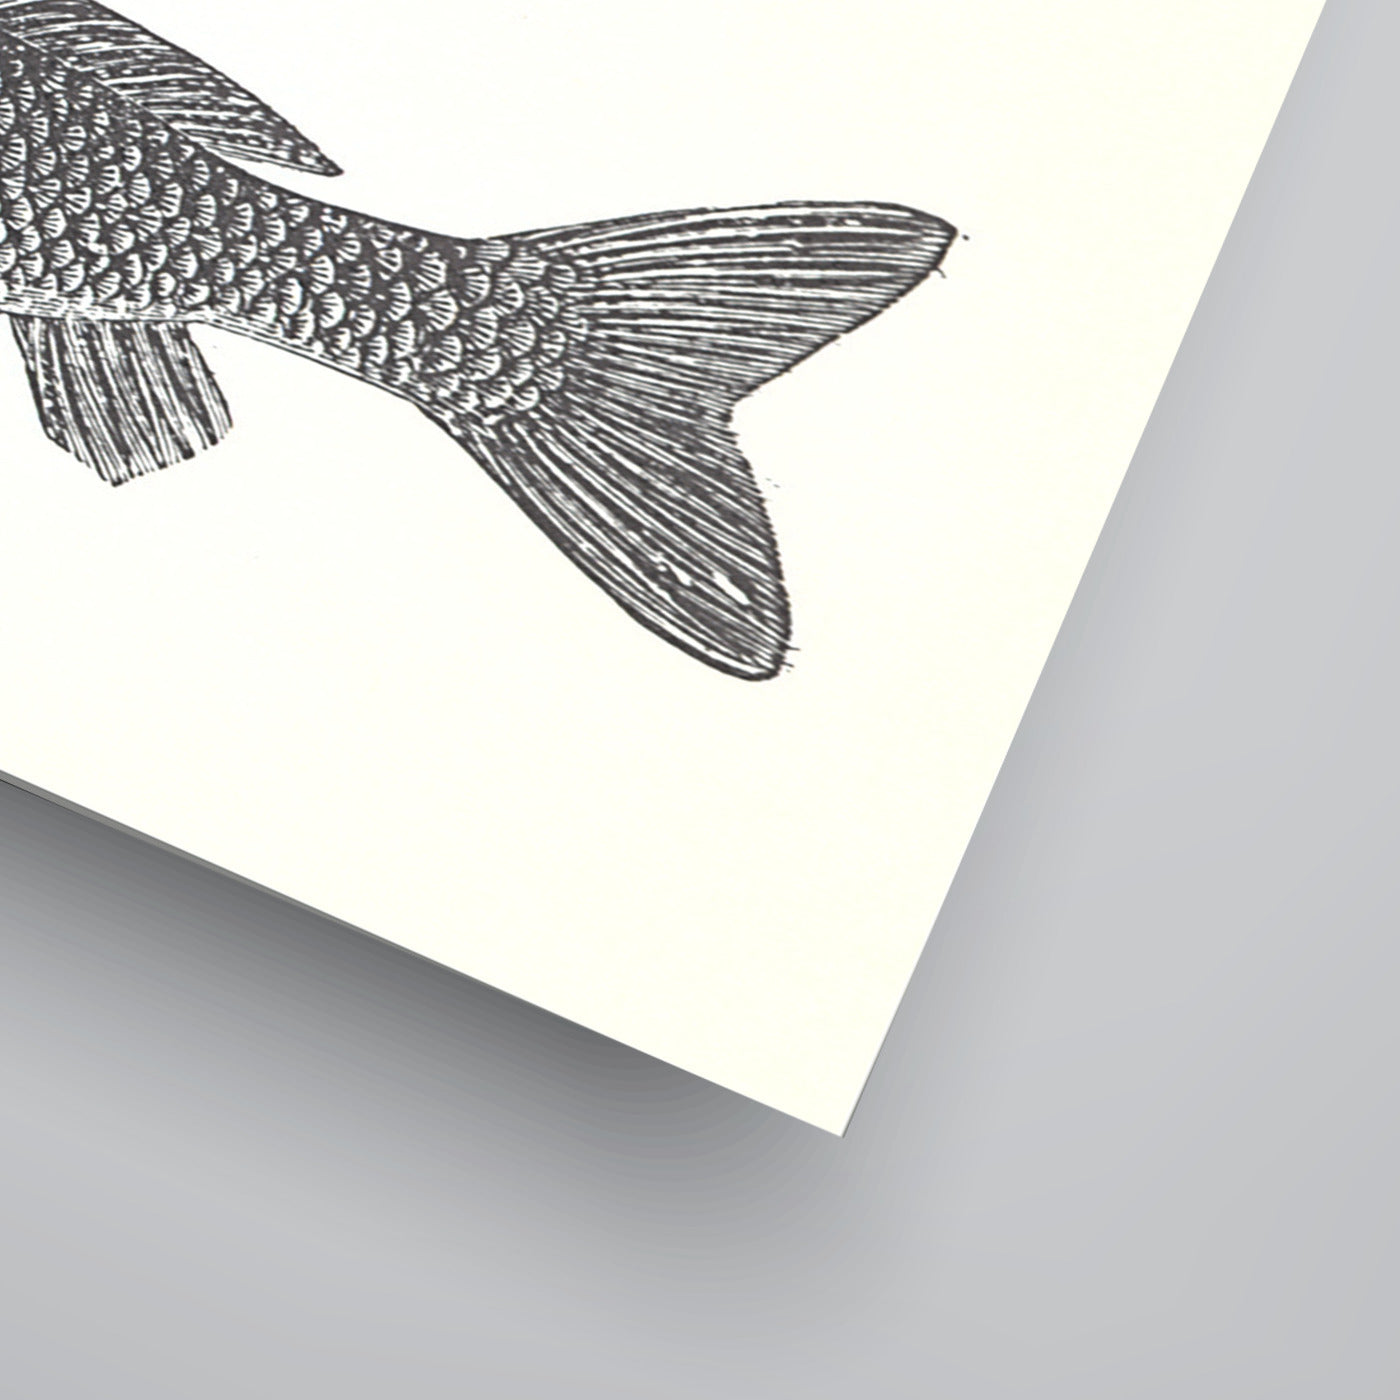 Images Of Fish by Found Image Press Art Print - Art Print - Americanflat